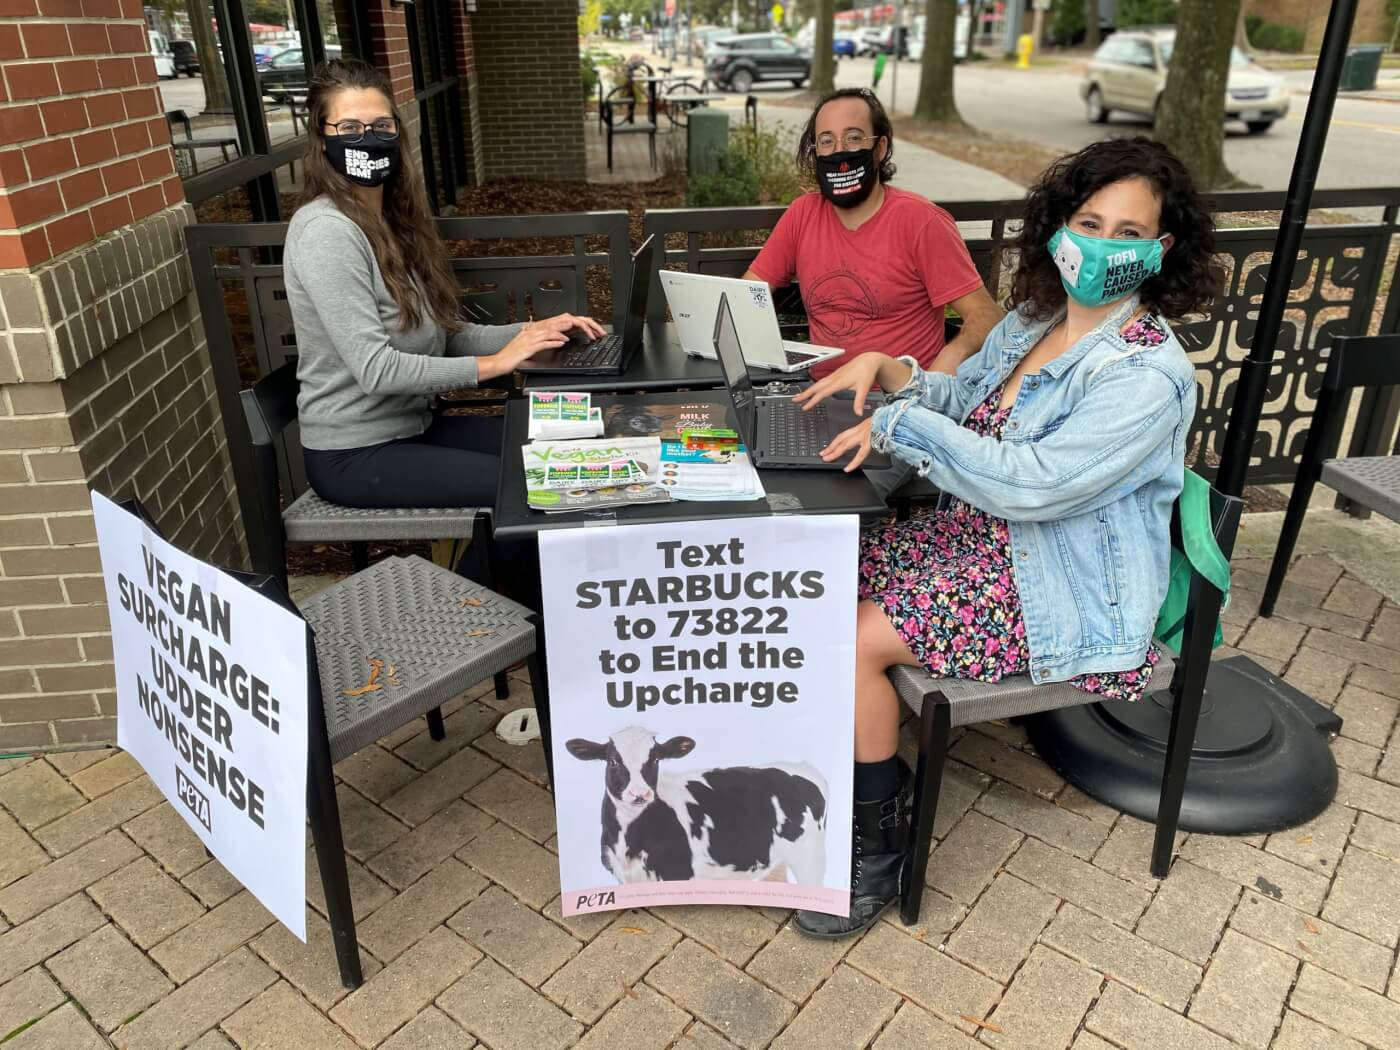 Animal rights activists occupying Starbucks